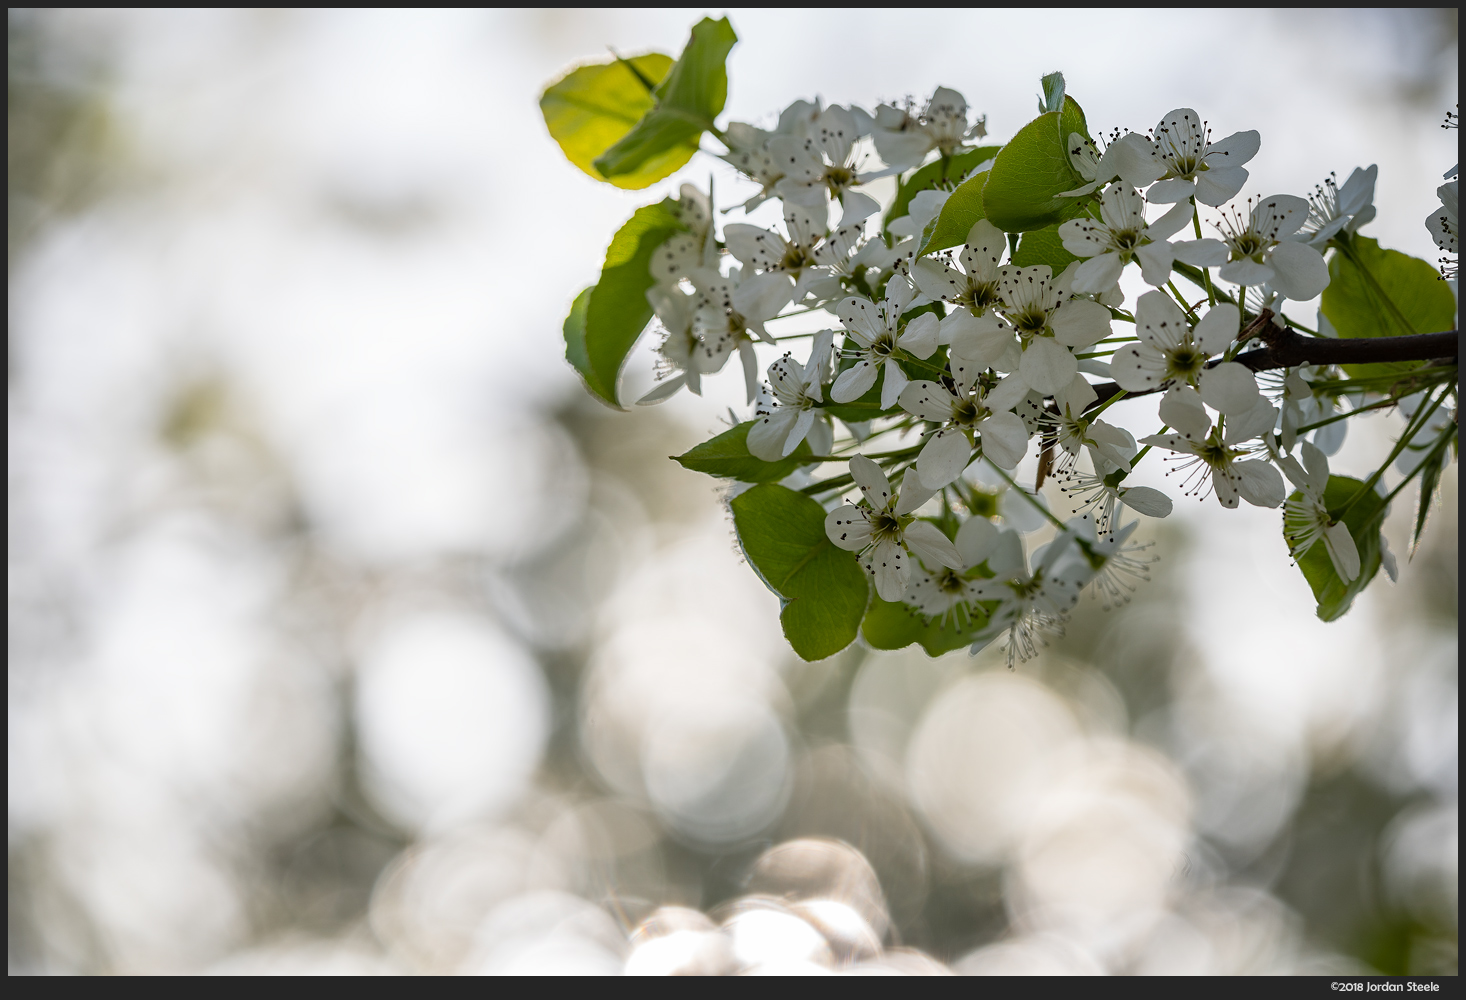 Blossoms - Sony A7 III with Sigma 100-400mm f/5-6.3 @